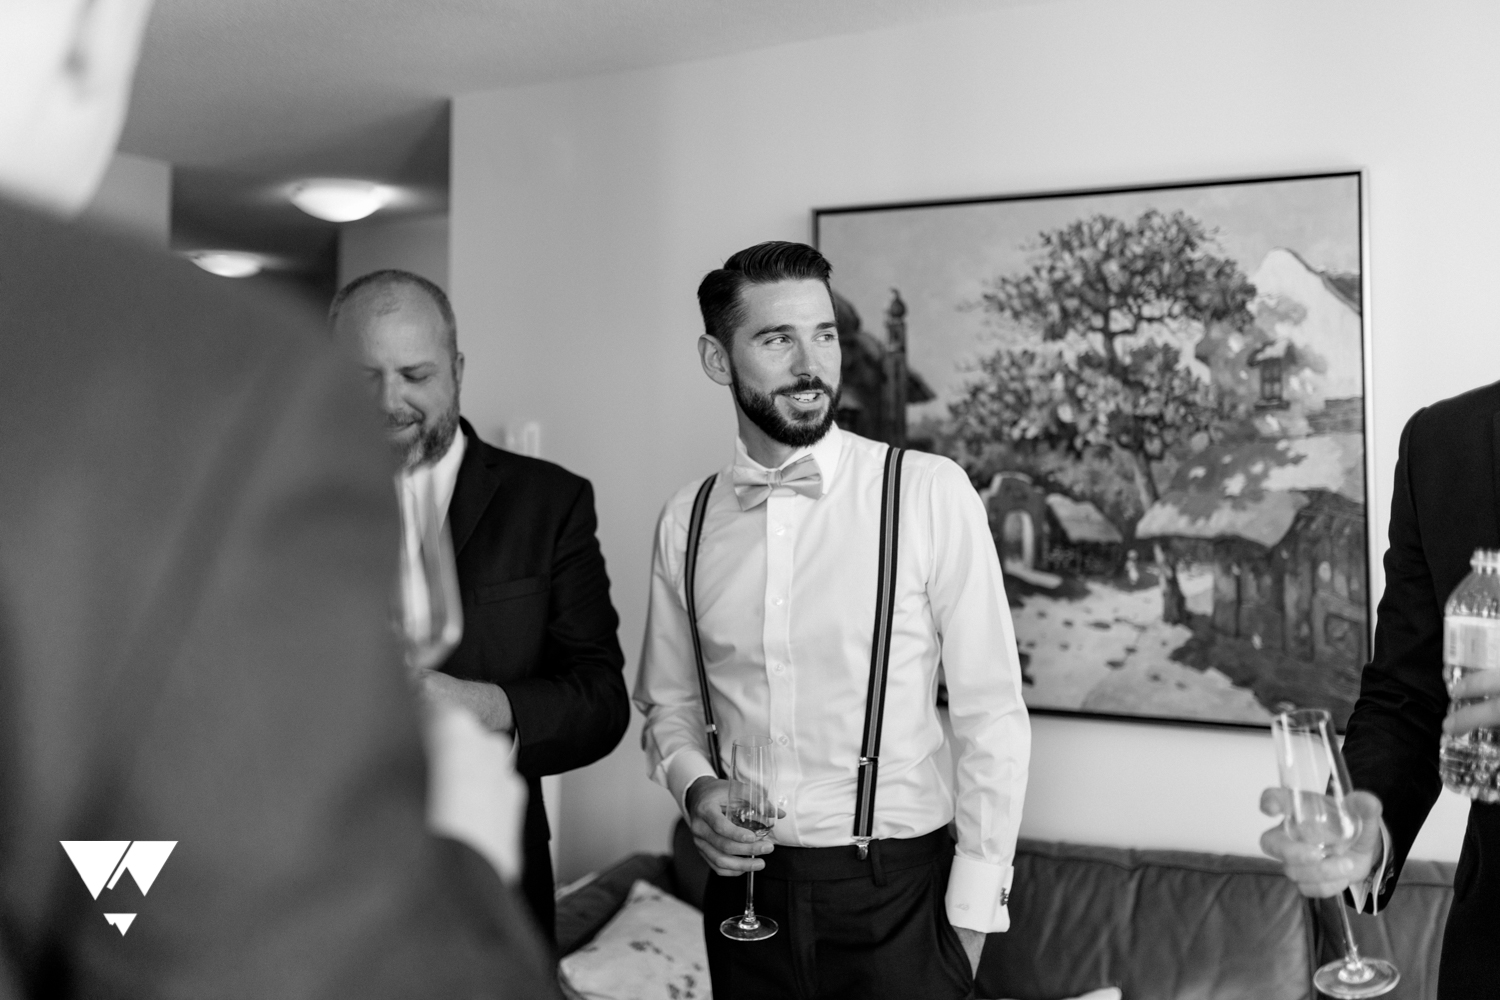 herastudios_wedding_nicole_michael_hera_selects_web-2.jpg